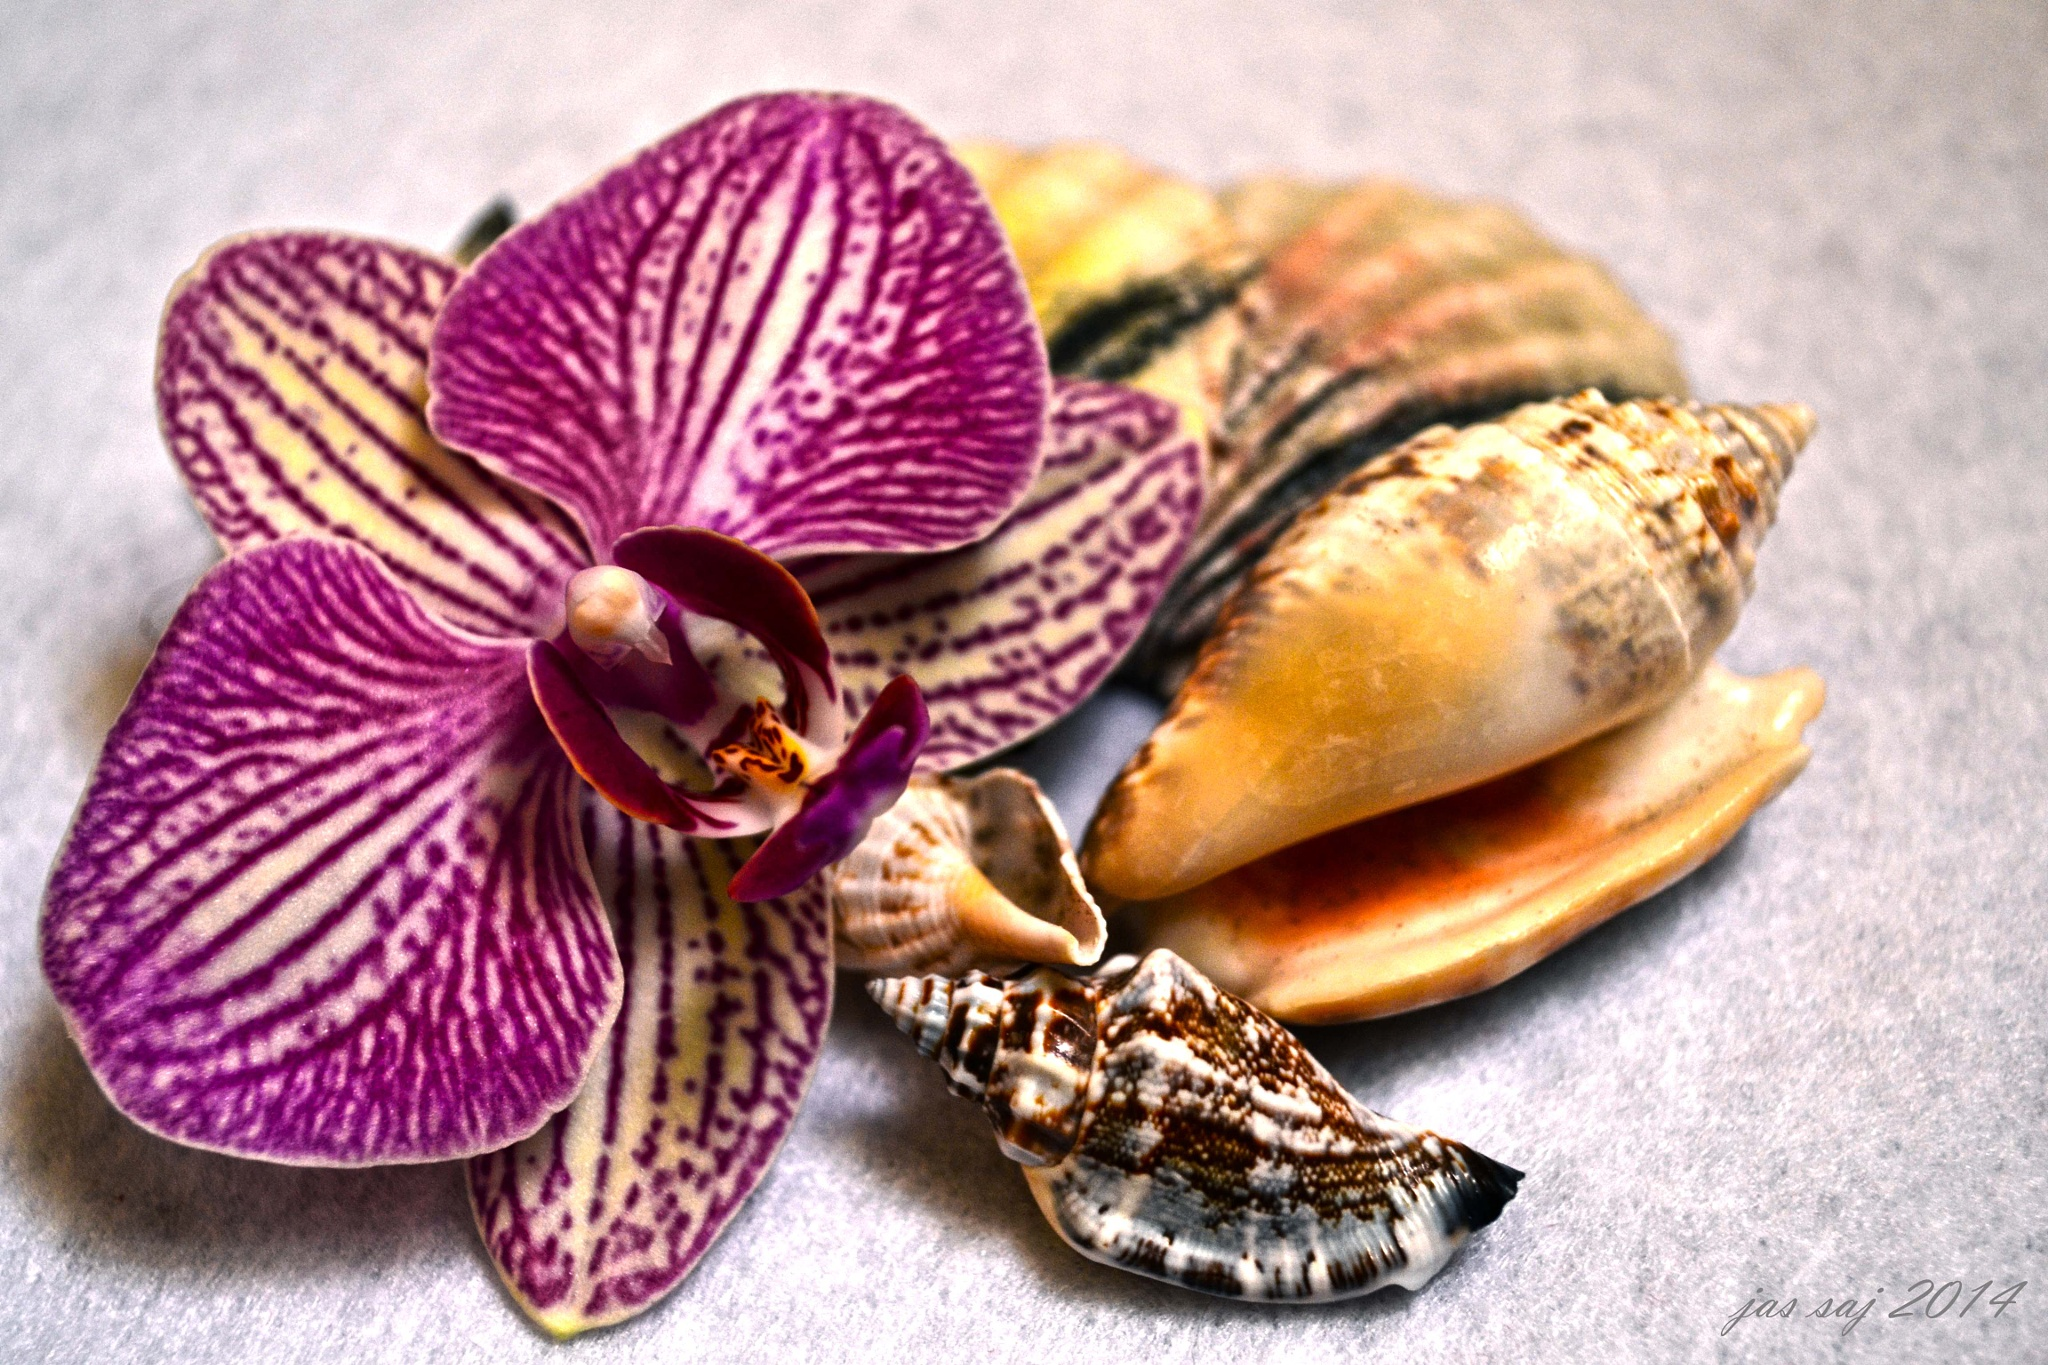 Orchid and shells by jassaj